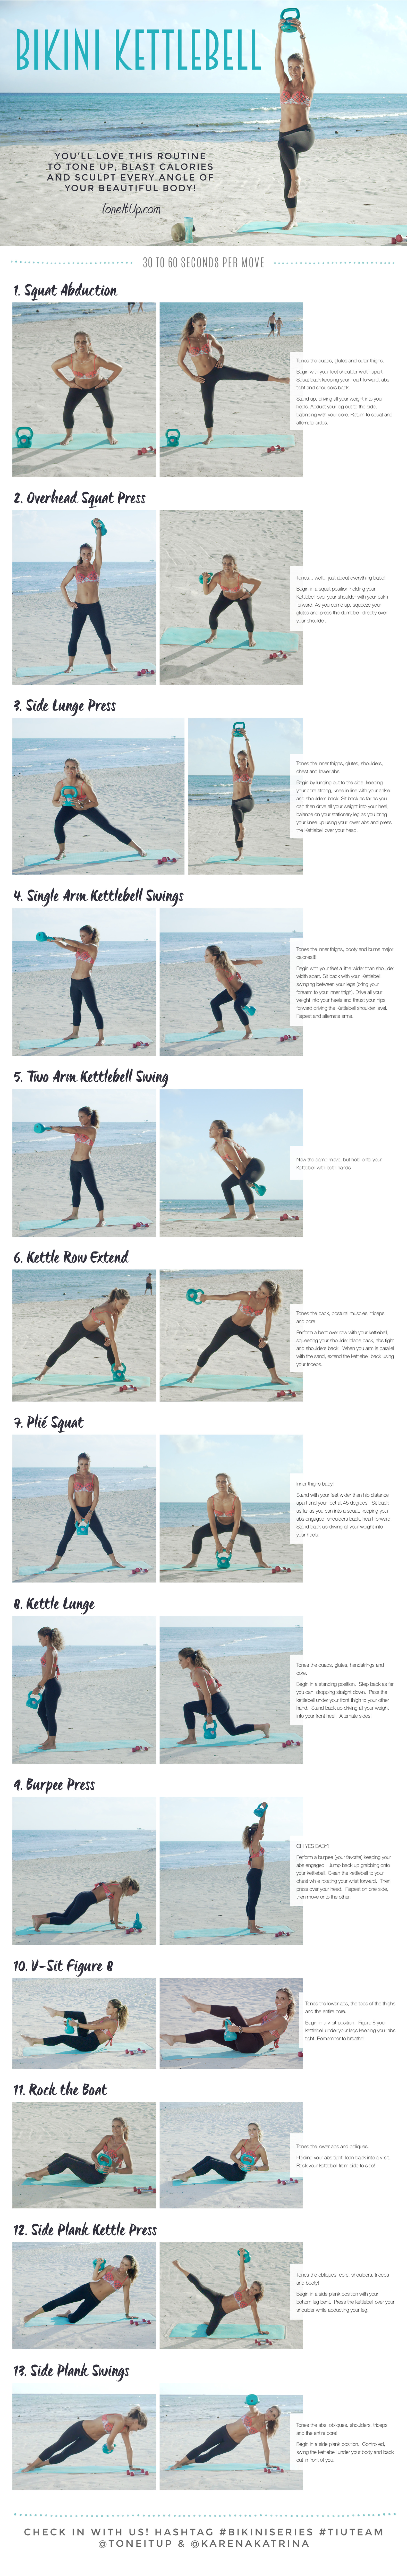 photo relating to Printable Kettlebell Workout called BIKINI KETTLEBELL! -